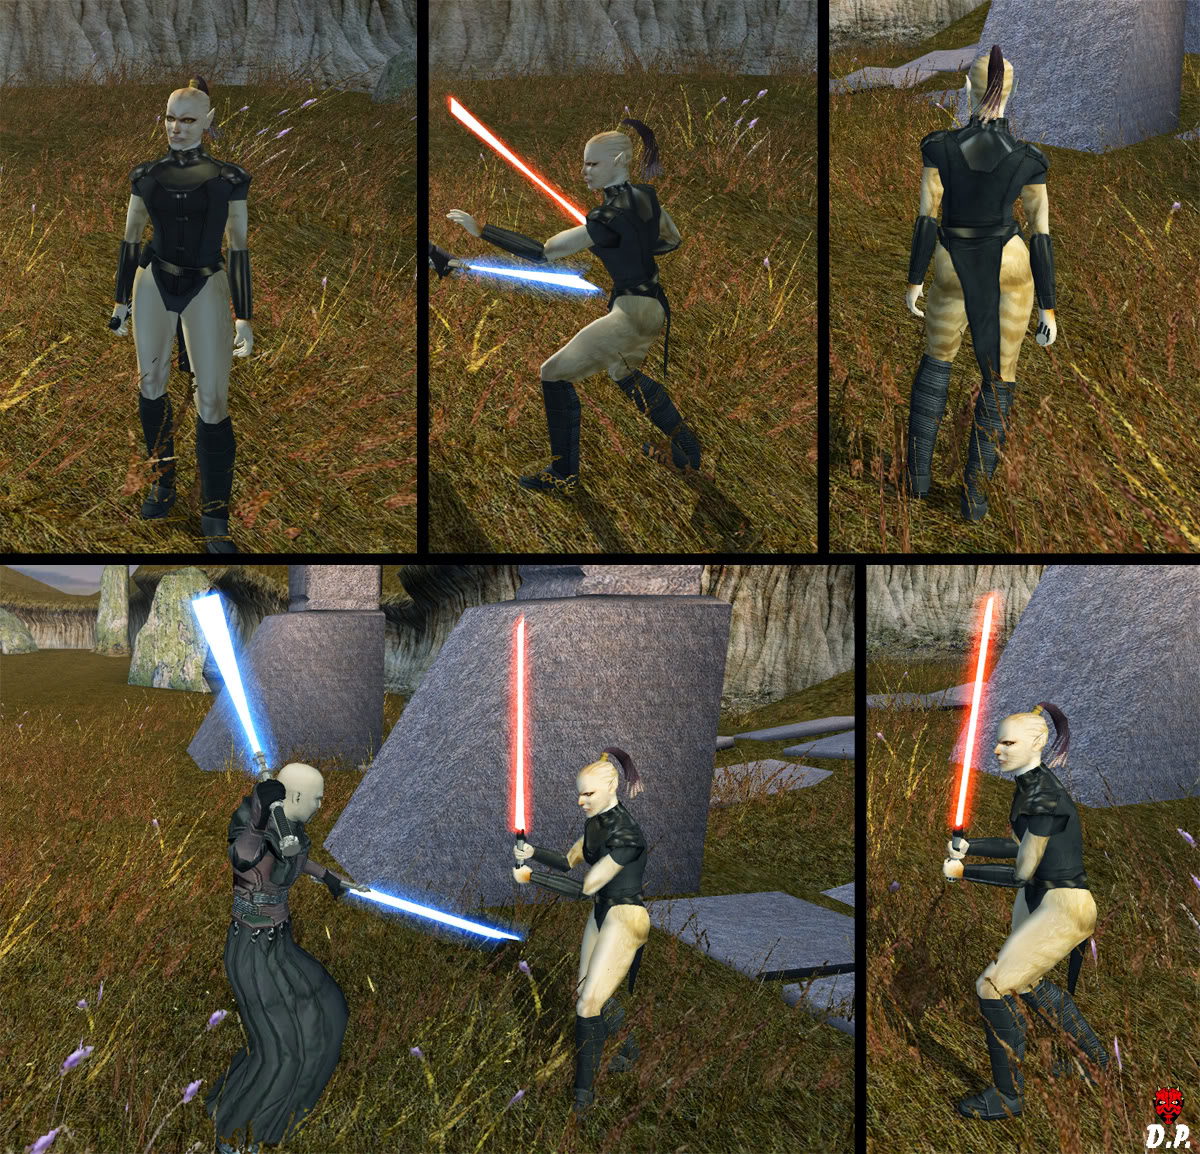 Nude mod for kotor 2 for pc hentia pic